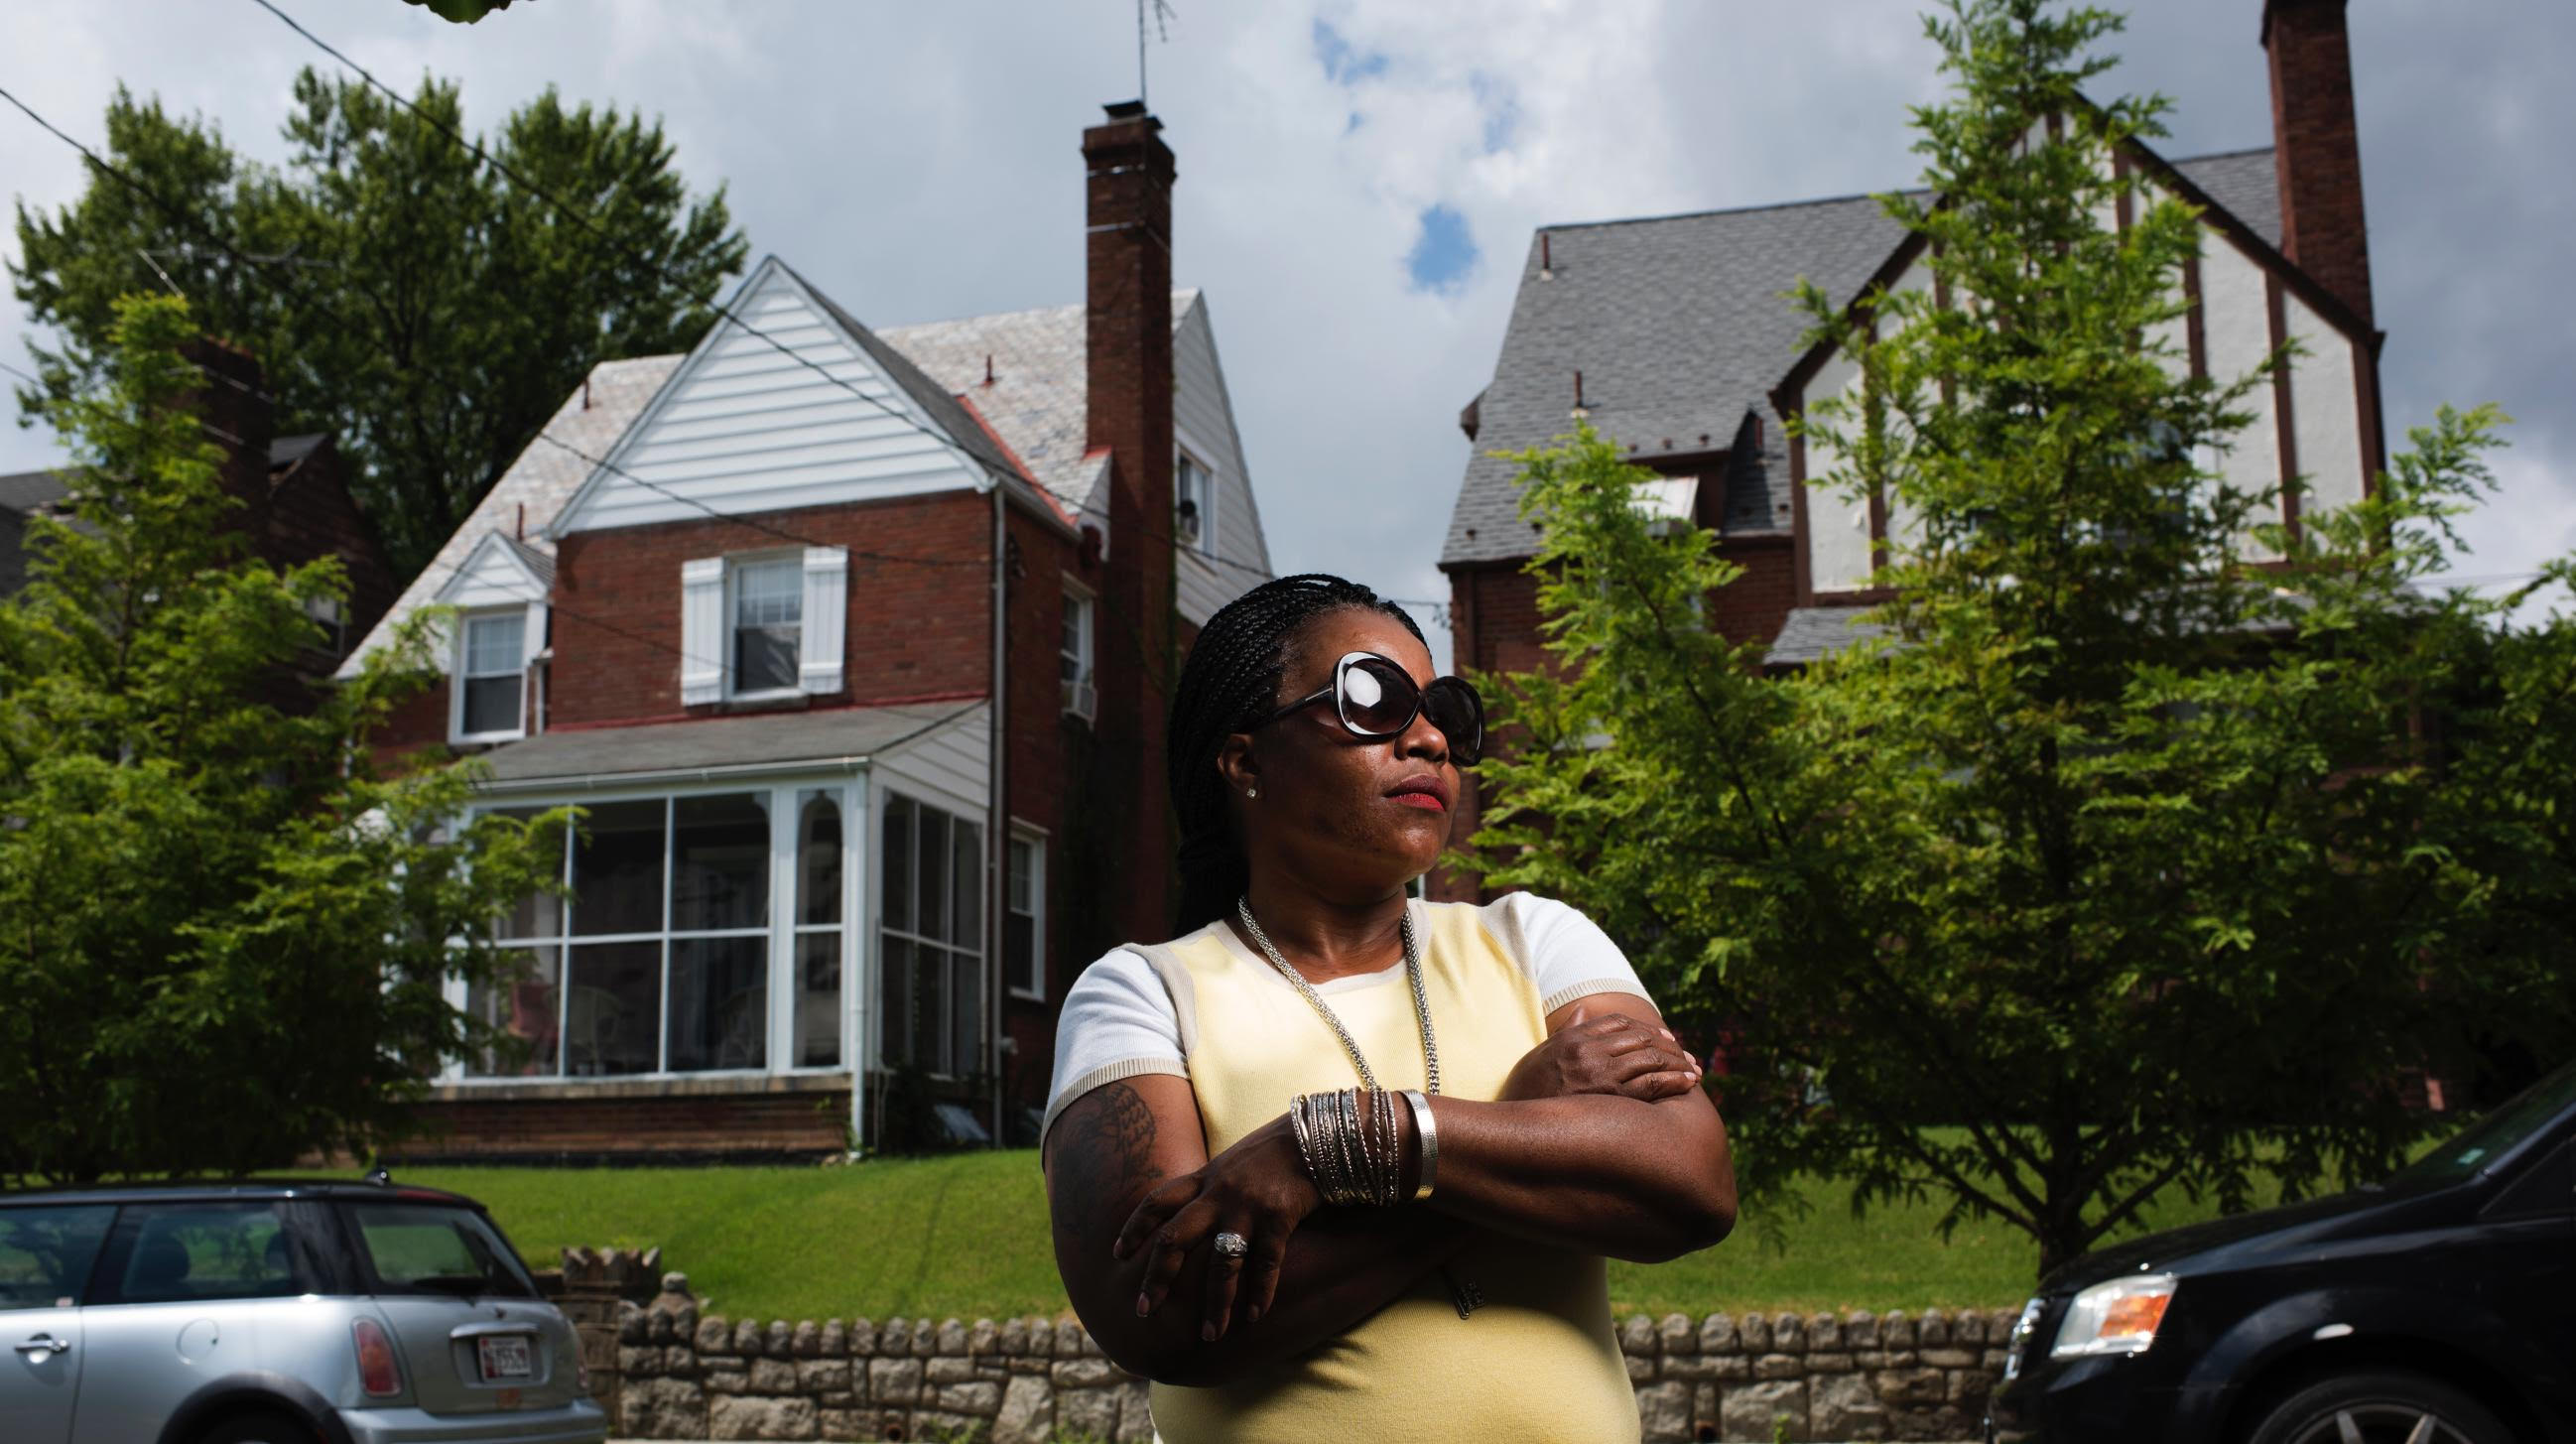 Rajuawn Middleton stands outside the house where she was forced her to leave in Washington, D.C. on August 21, 2016